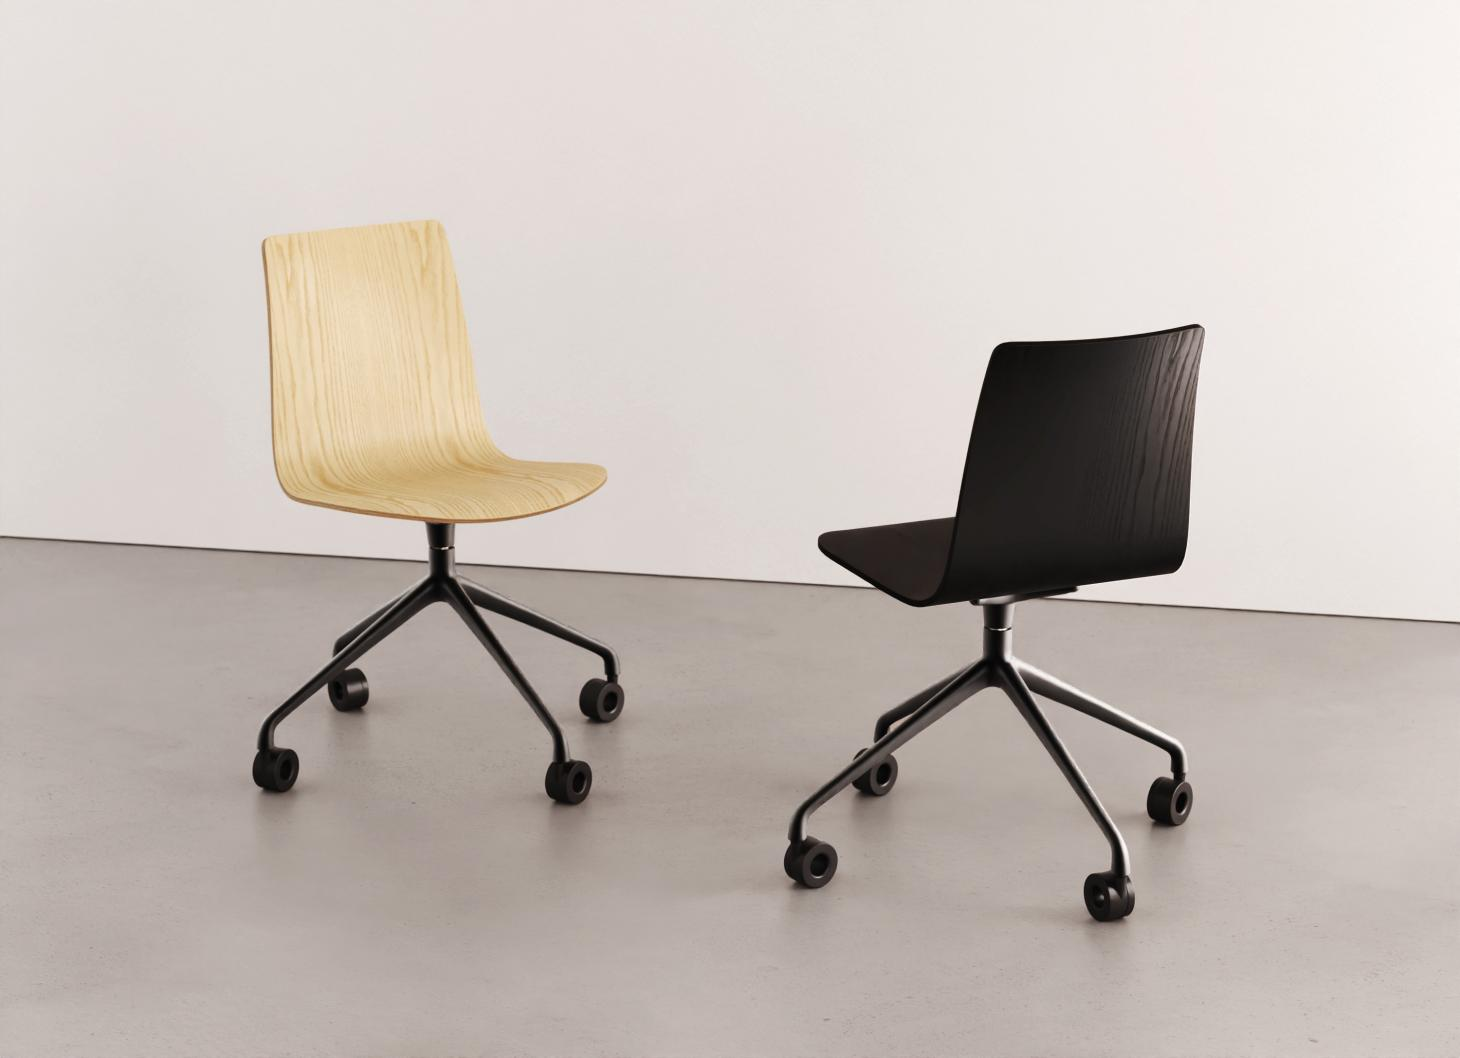 Two office chairs, in natural wood and black stained wood, with wheels, by Dims